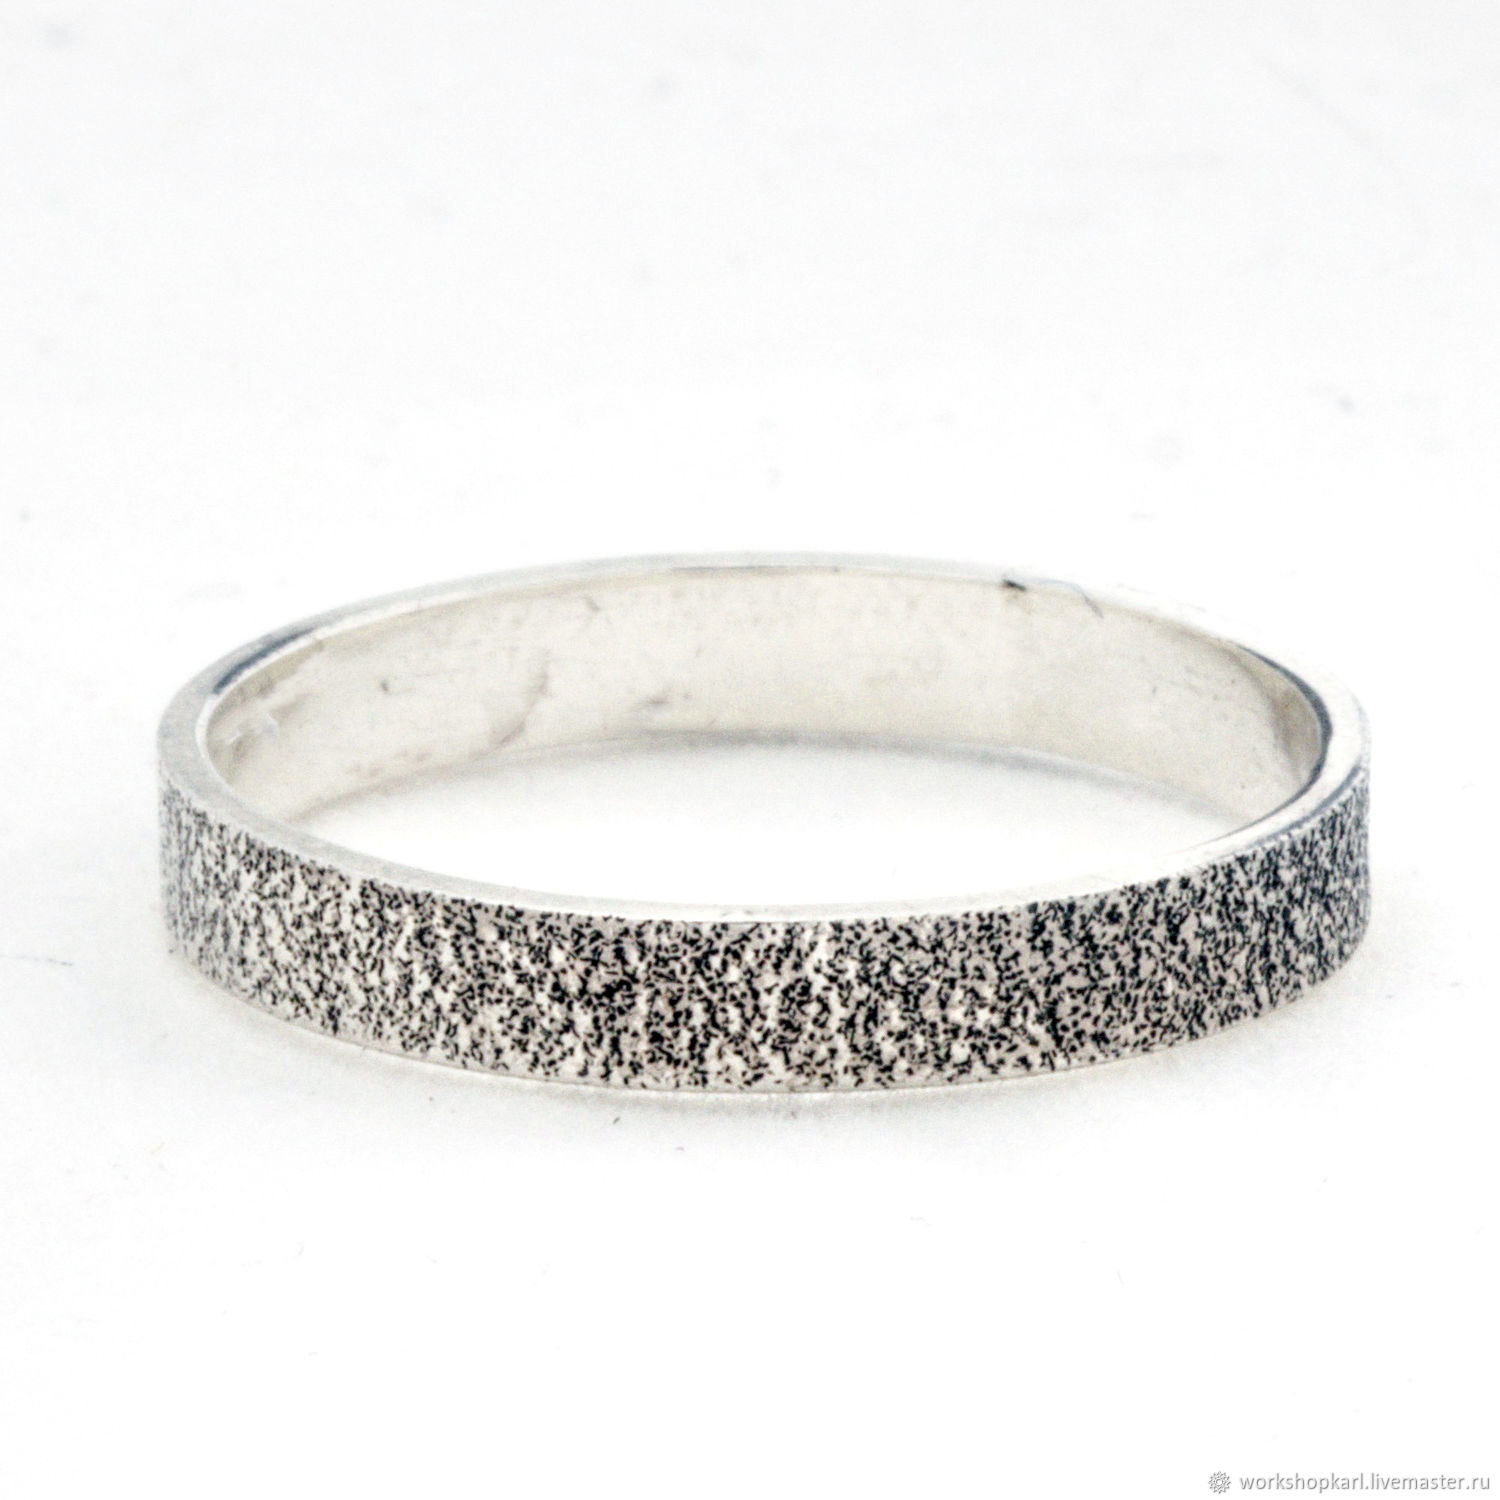 Texture ring 'Emery', Rings, Moscow,  Фото №1